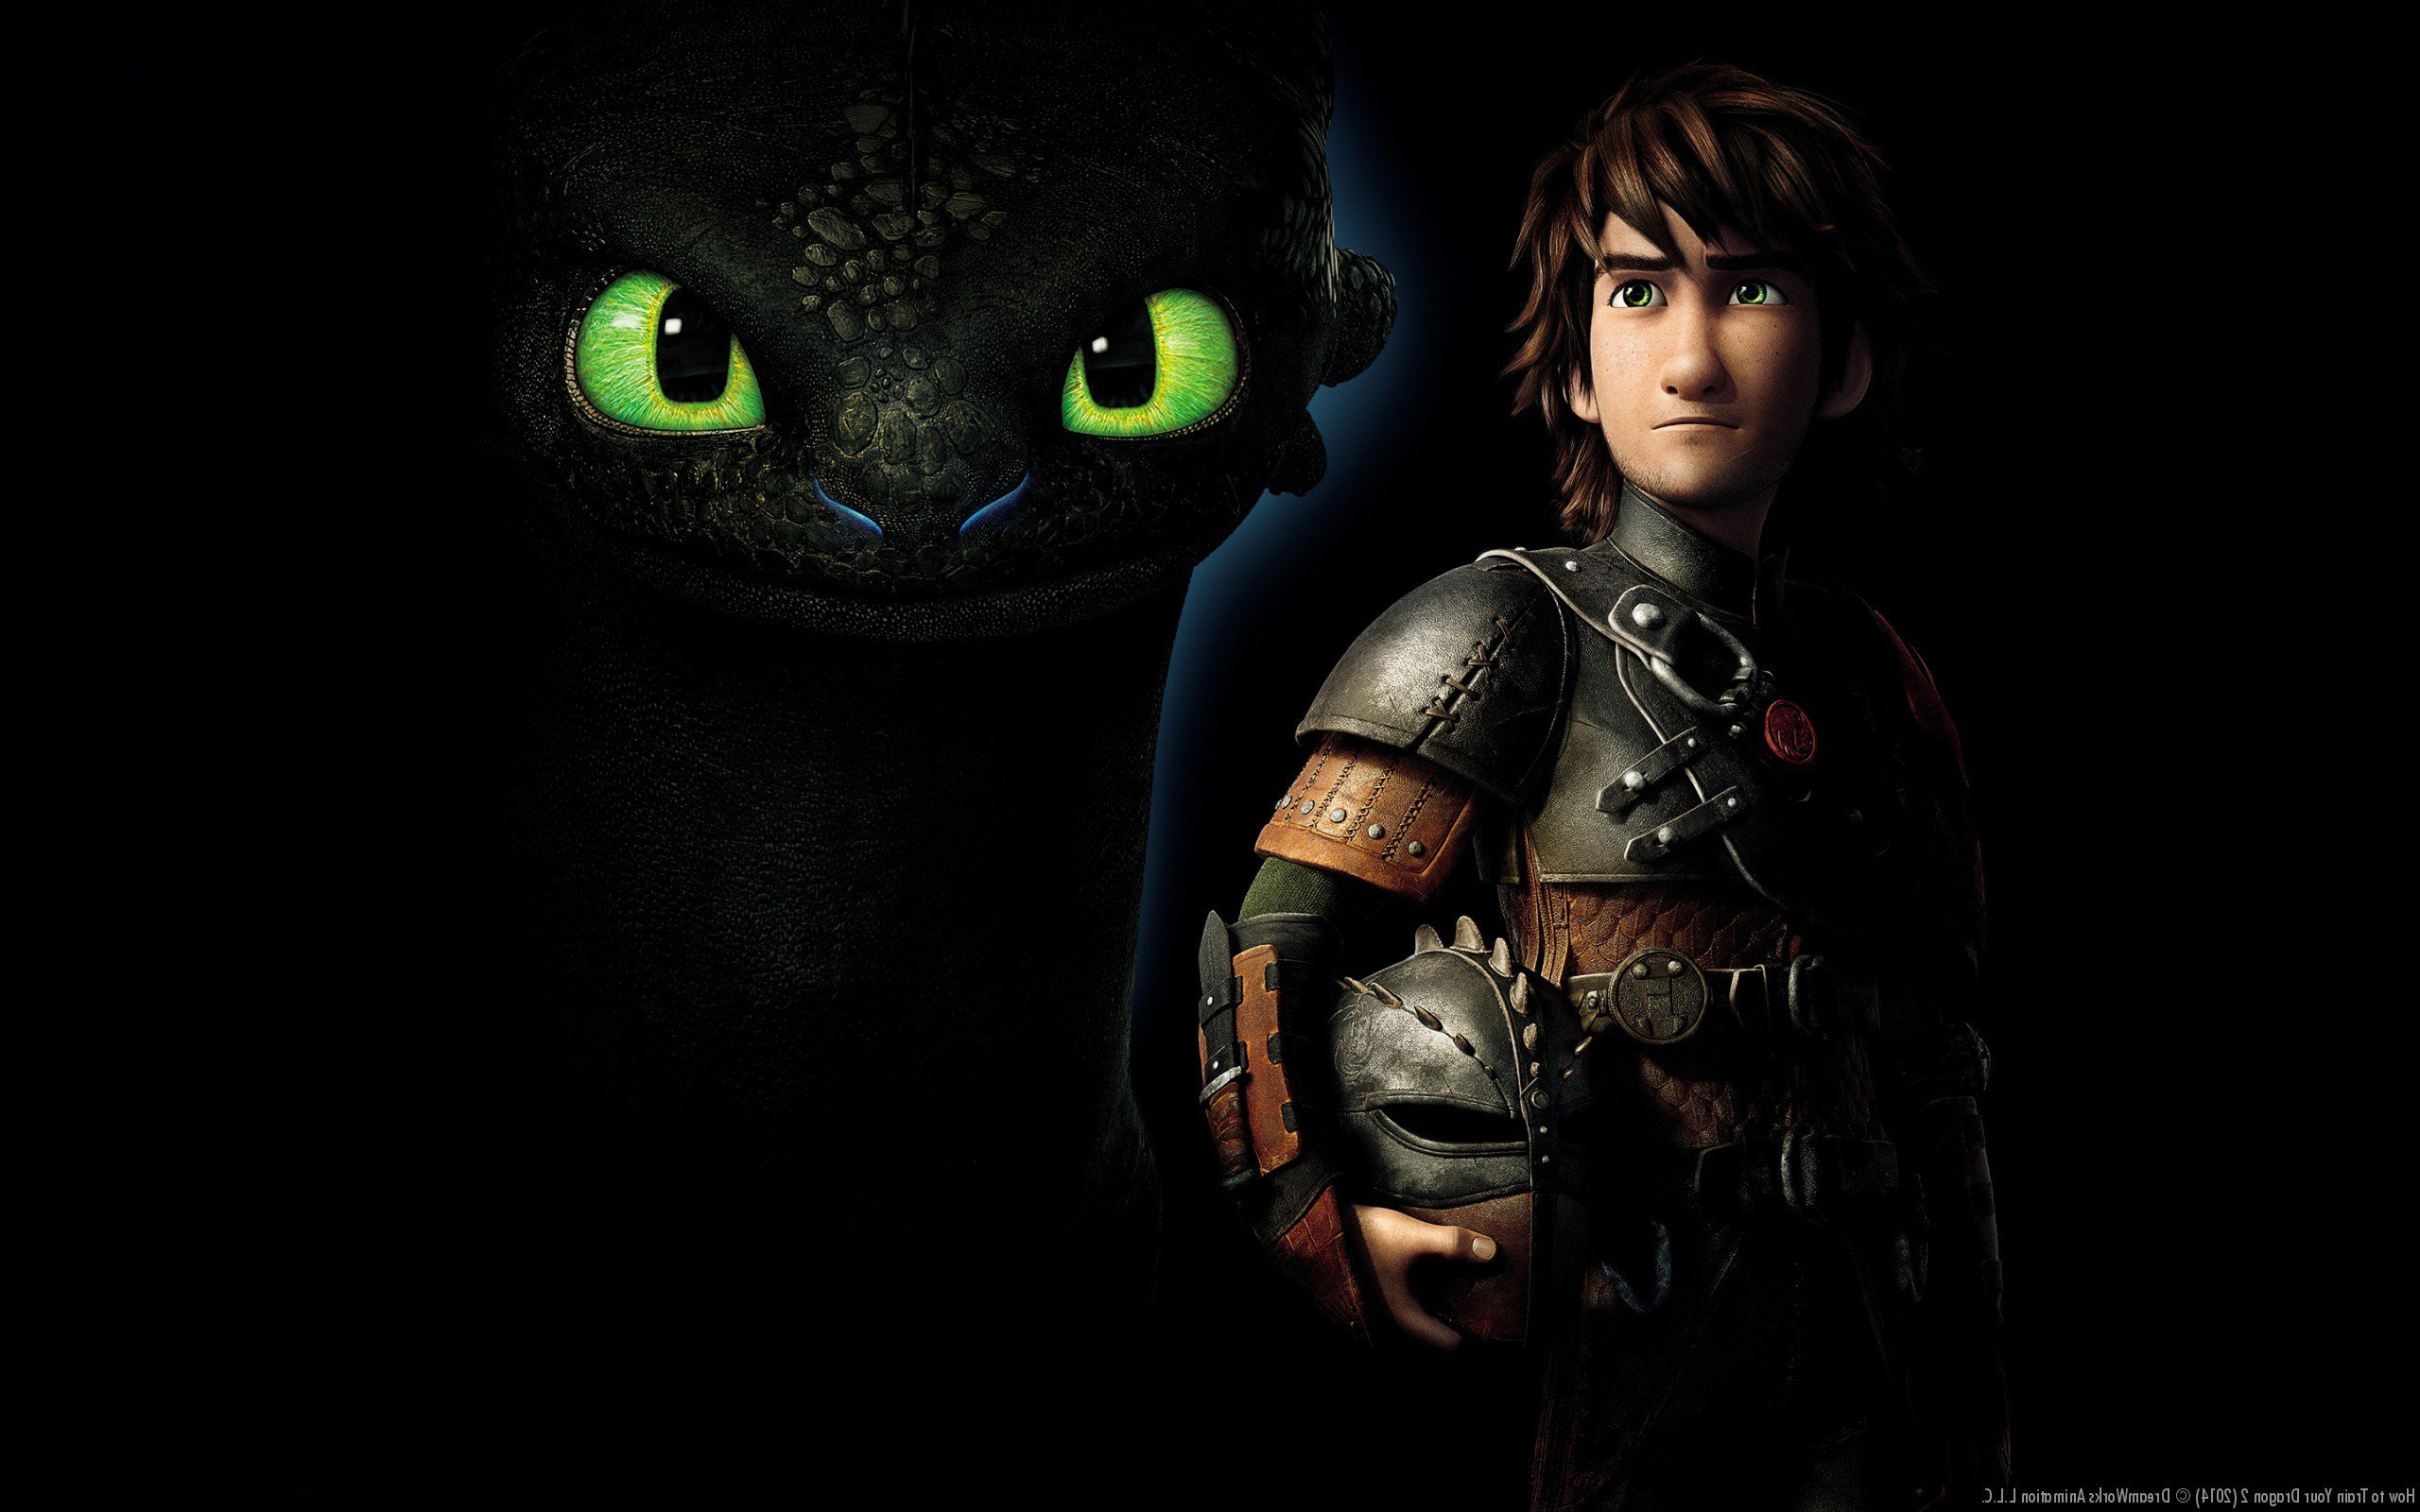 How To Train Your Dragon Hd Hd Movies 4k Wallpapers Images